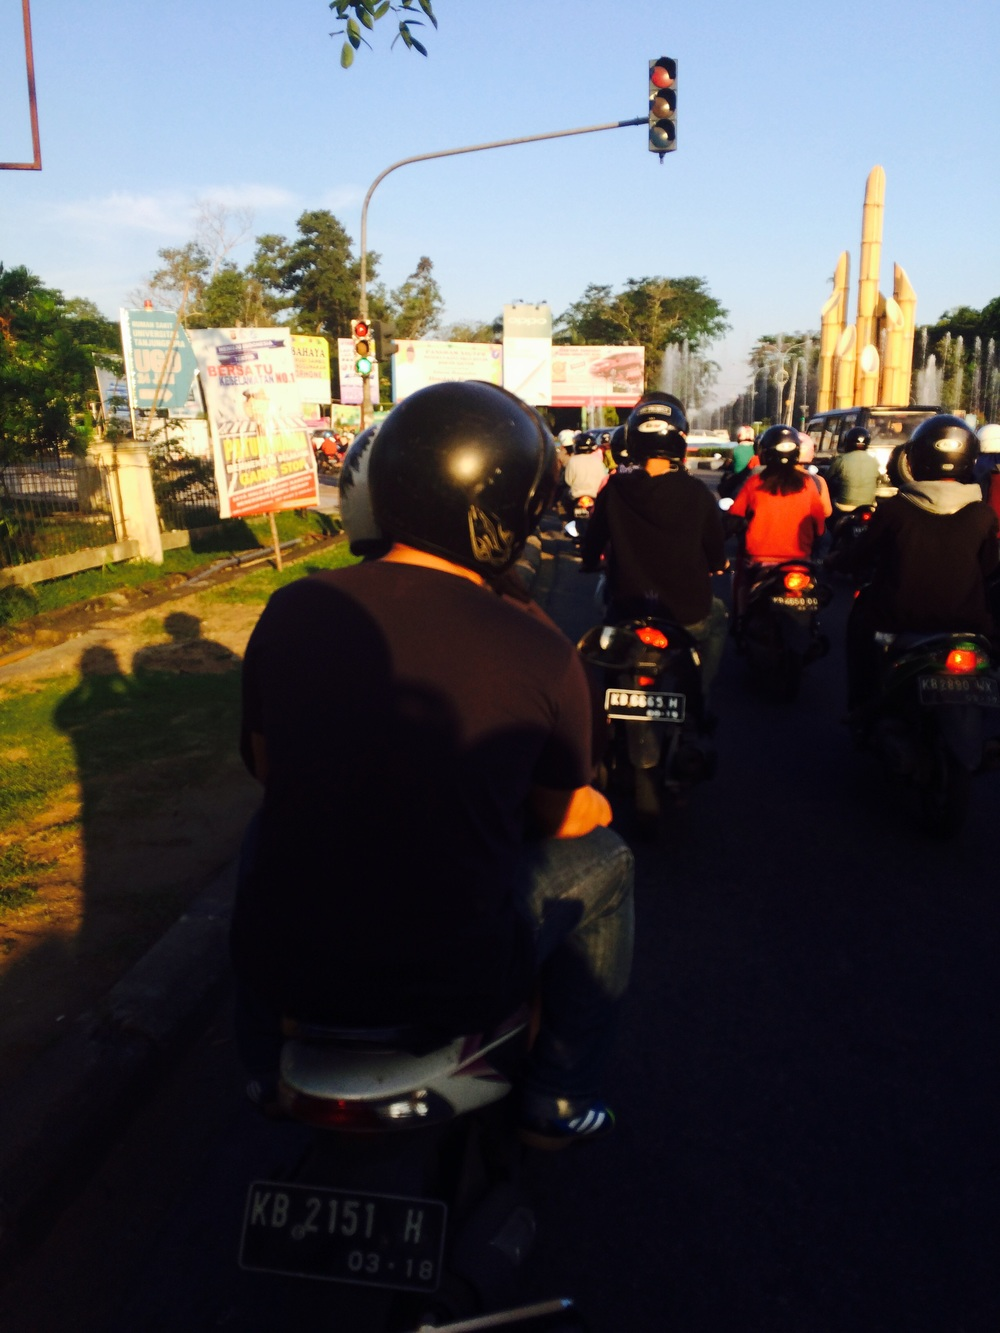 Pontianak rush hour with multitudes of motorbikes.